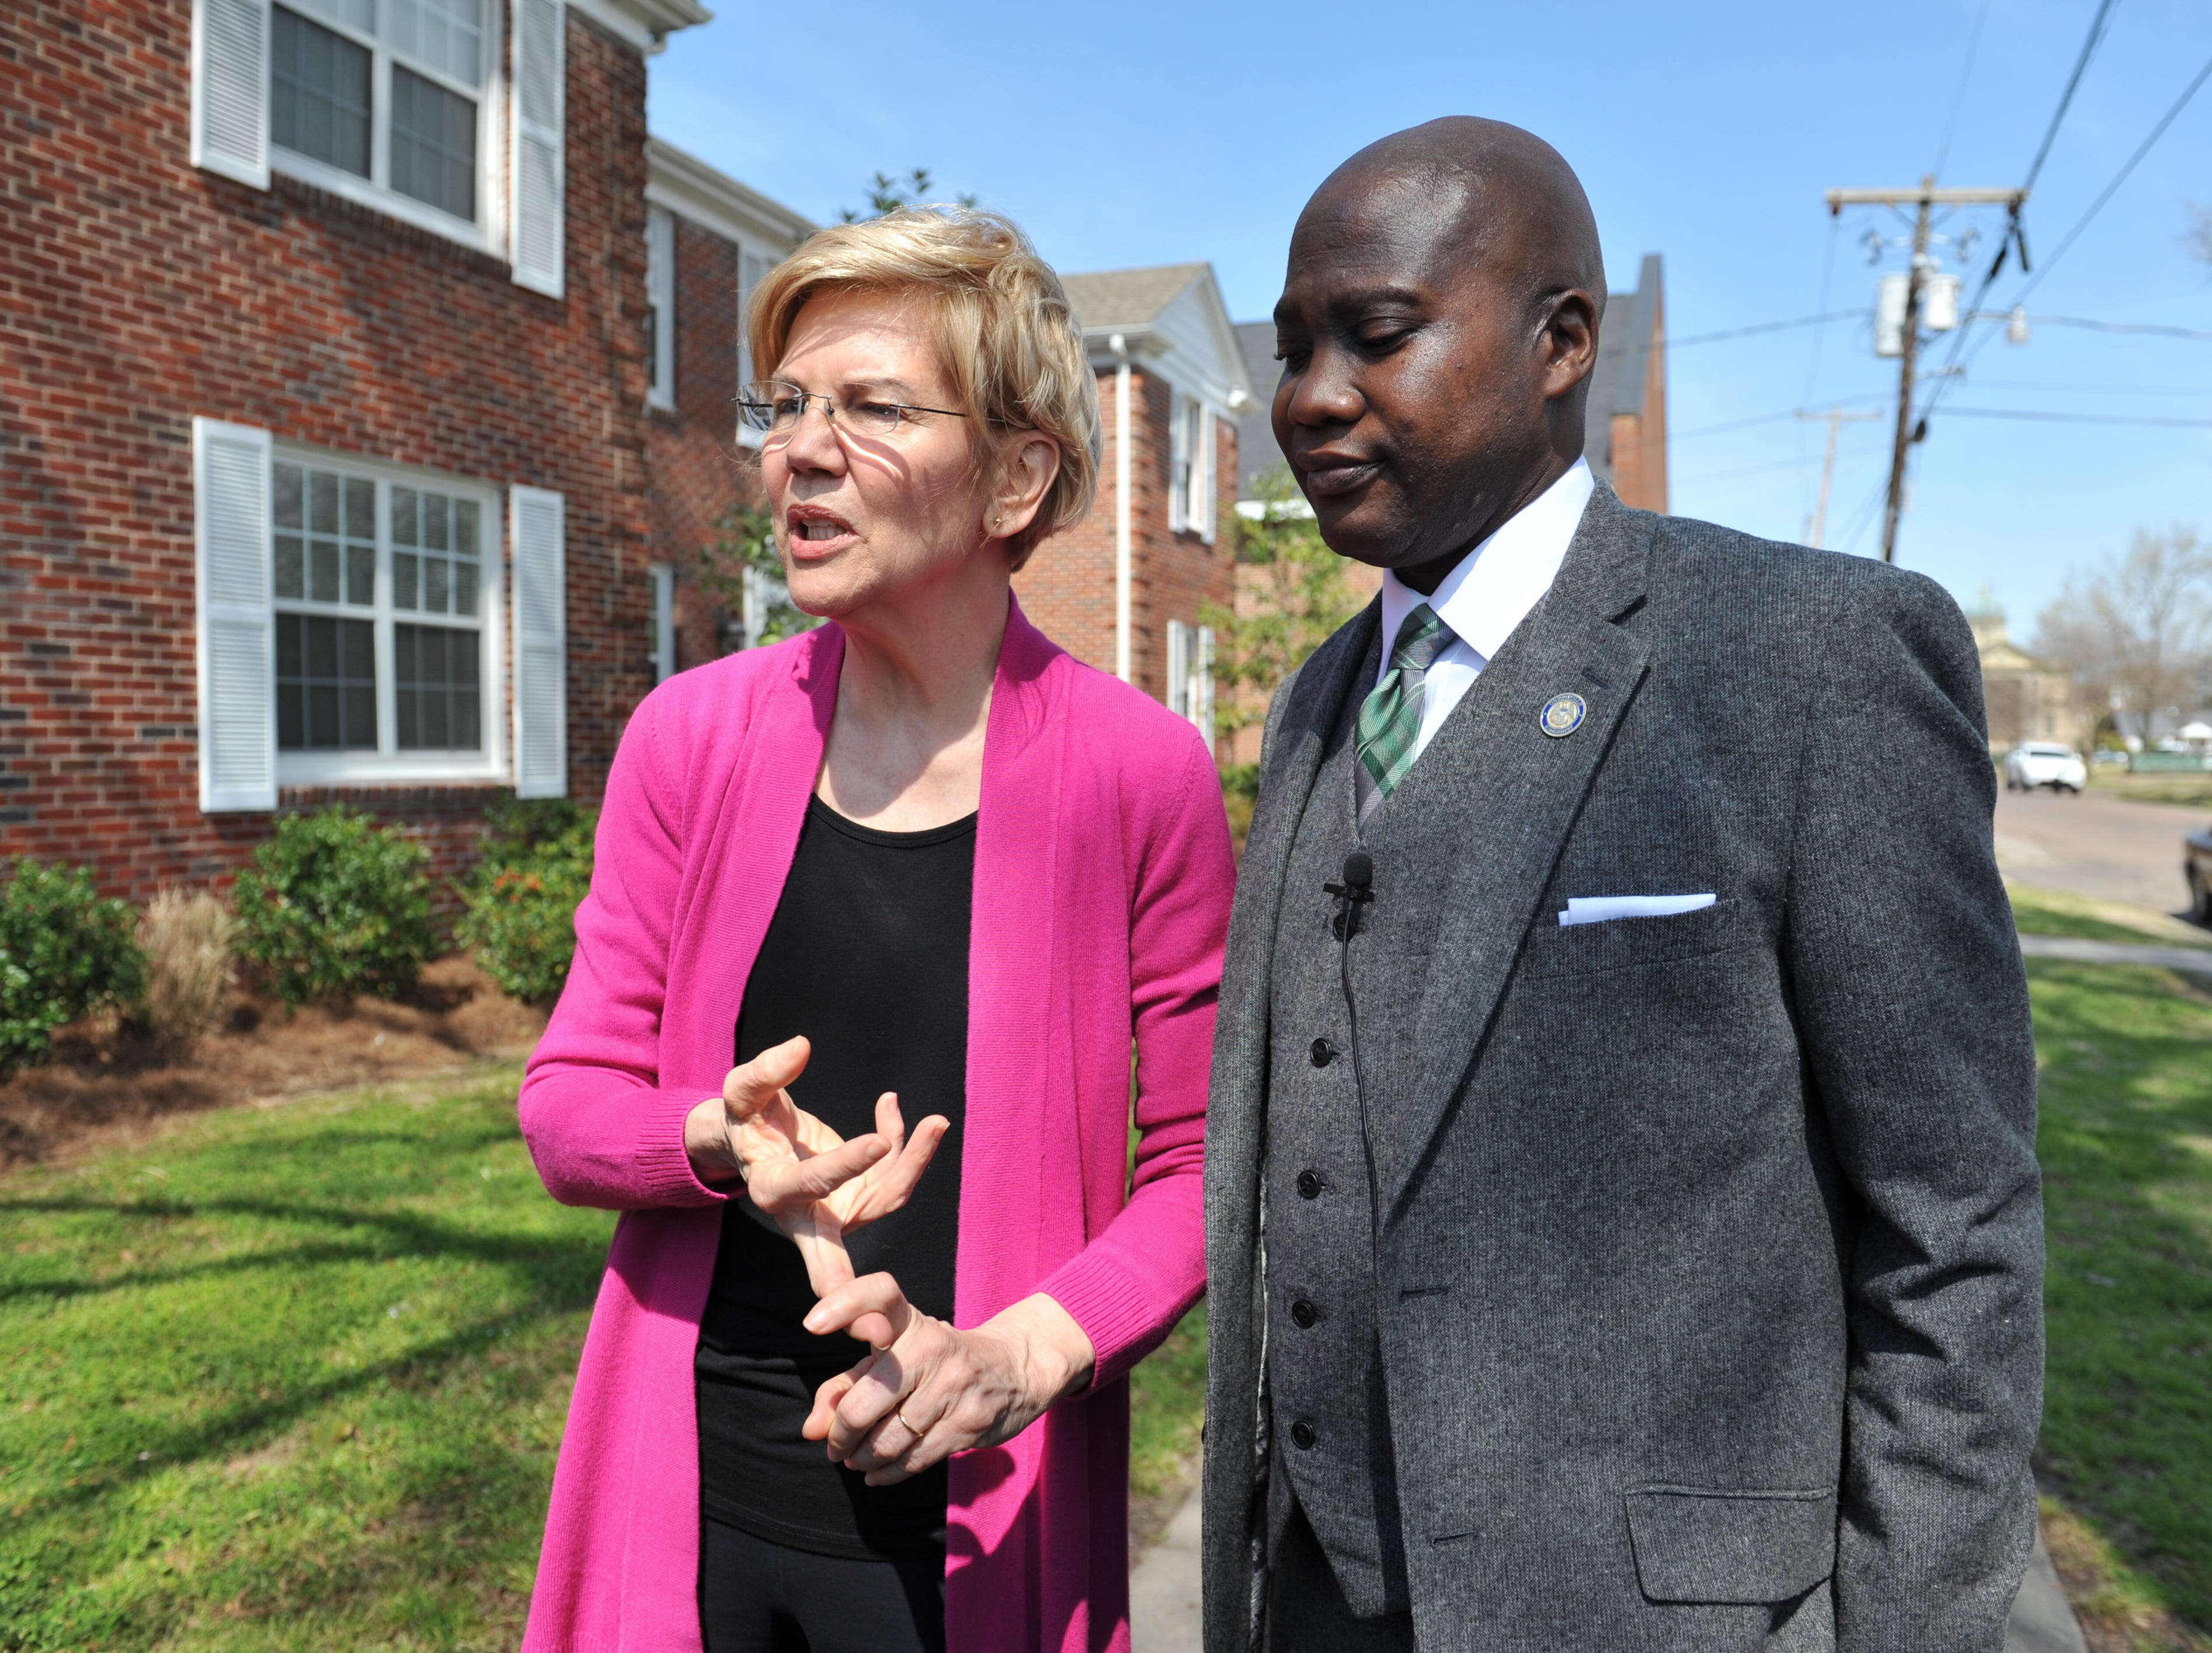 While addressing media Monday, March 18, 2019, presidential candidate Sen. Elizabeth Warren, D-Mass., with Greenville Mayor Erick Simmons, lists the things Greenville has done right in addressing the affordable housing shortage in the city.